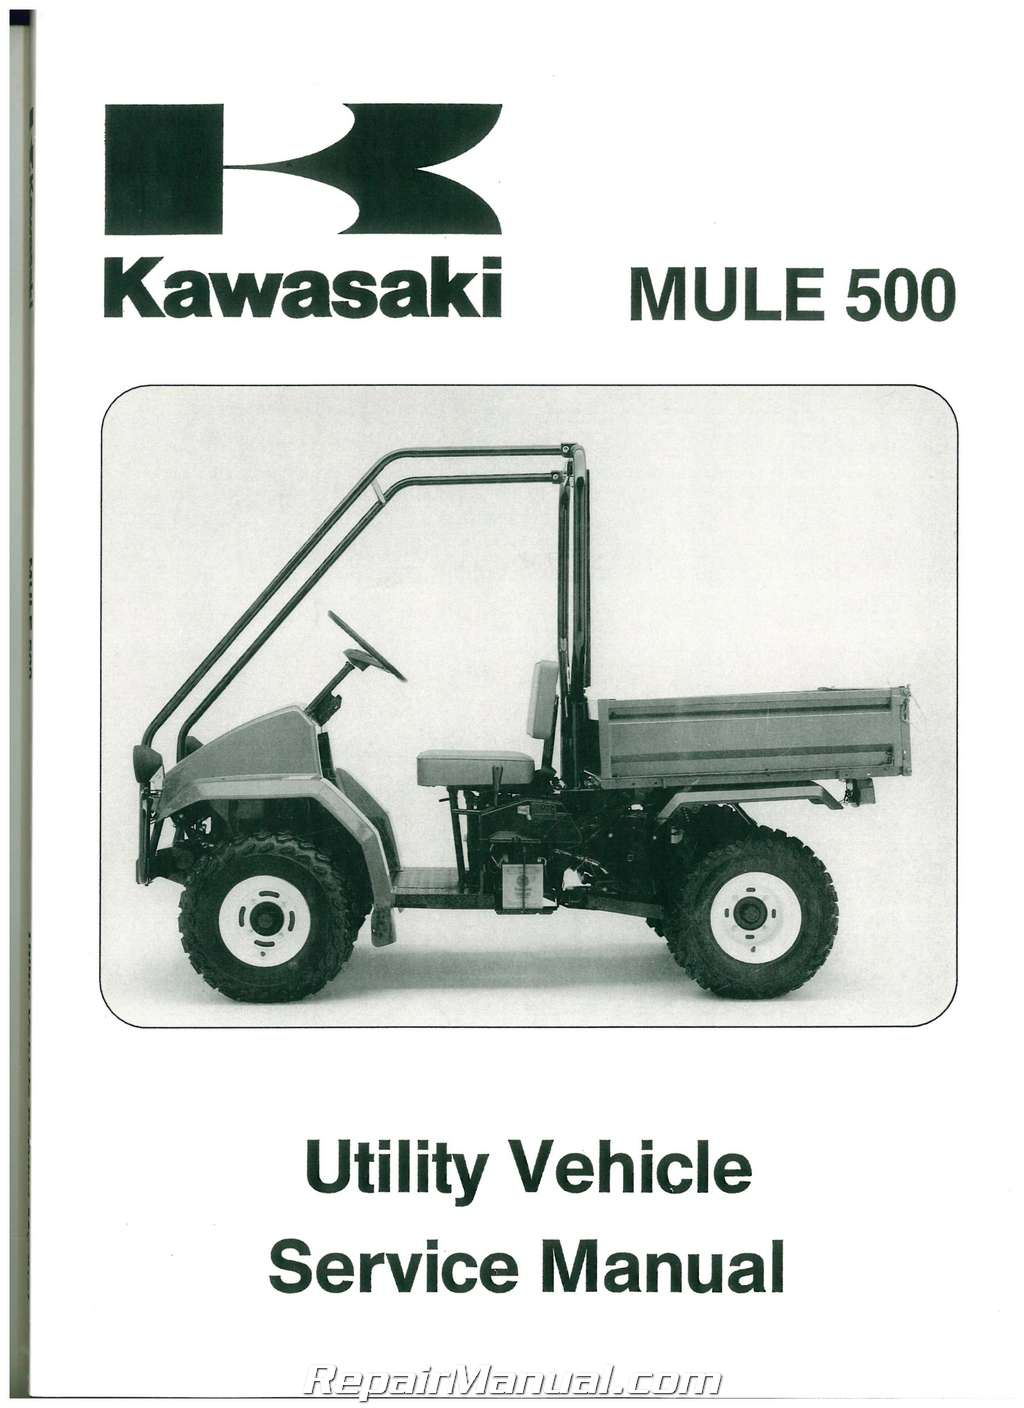 Kawasaki Mule 550 Wiring Diagram Simple Shematics Z 1990 2004 Kaf300a 500 520 Utv Service Manual Kz650